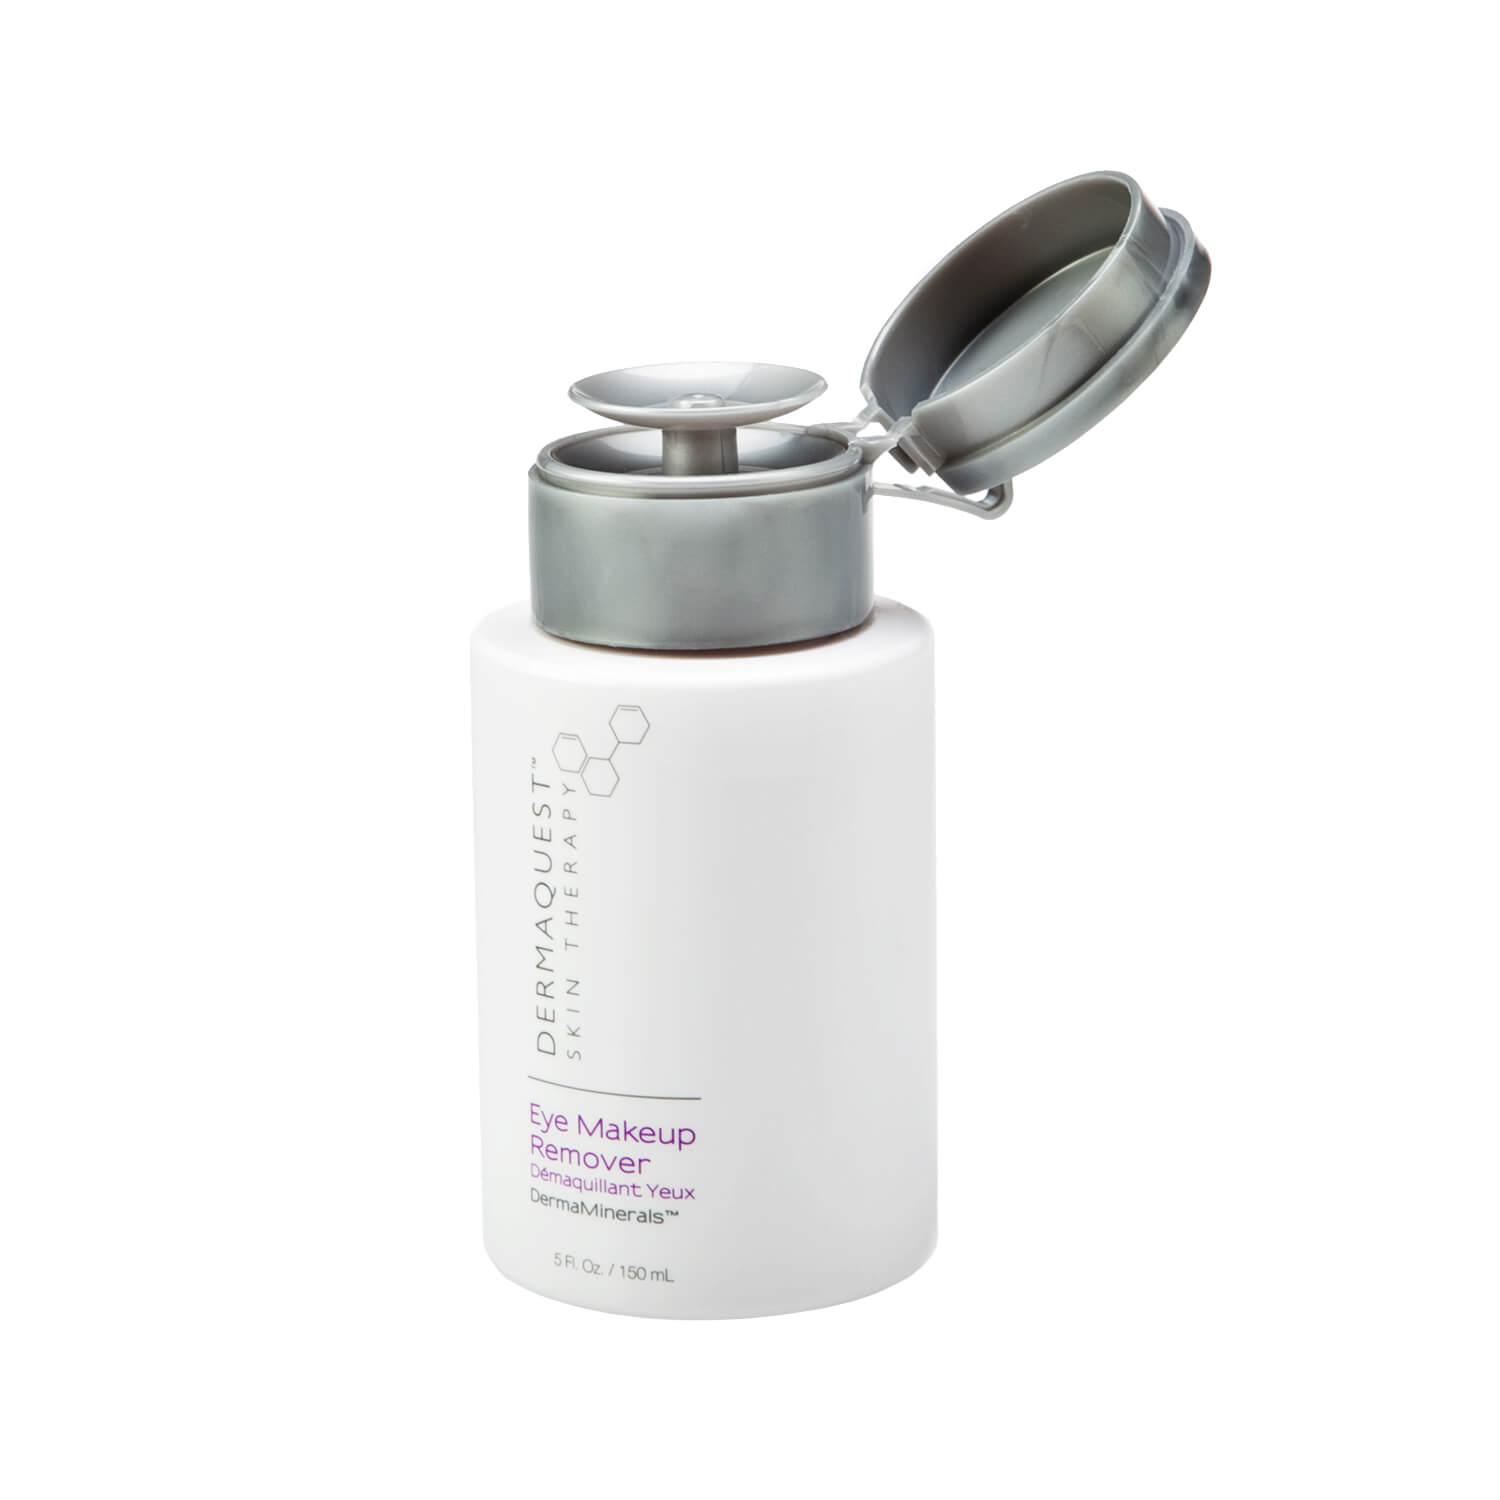 Dermaquest Skin Therapy Eye Make Up